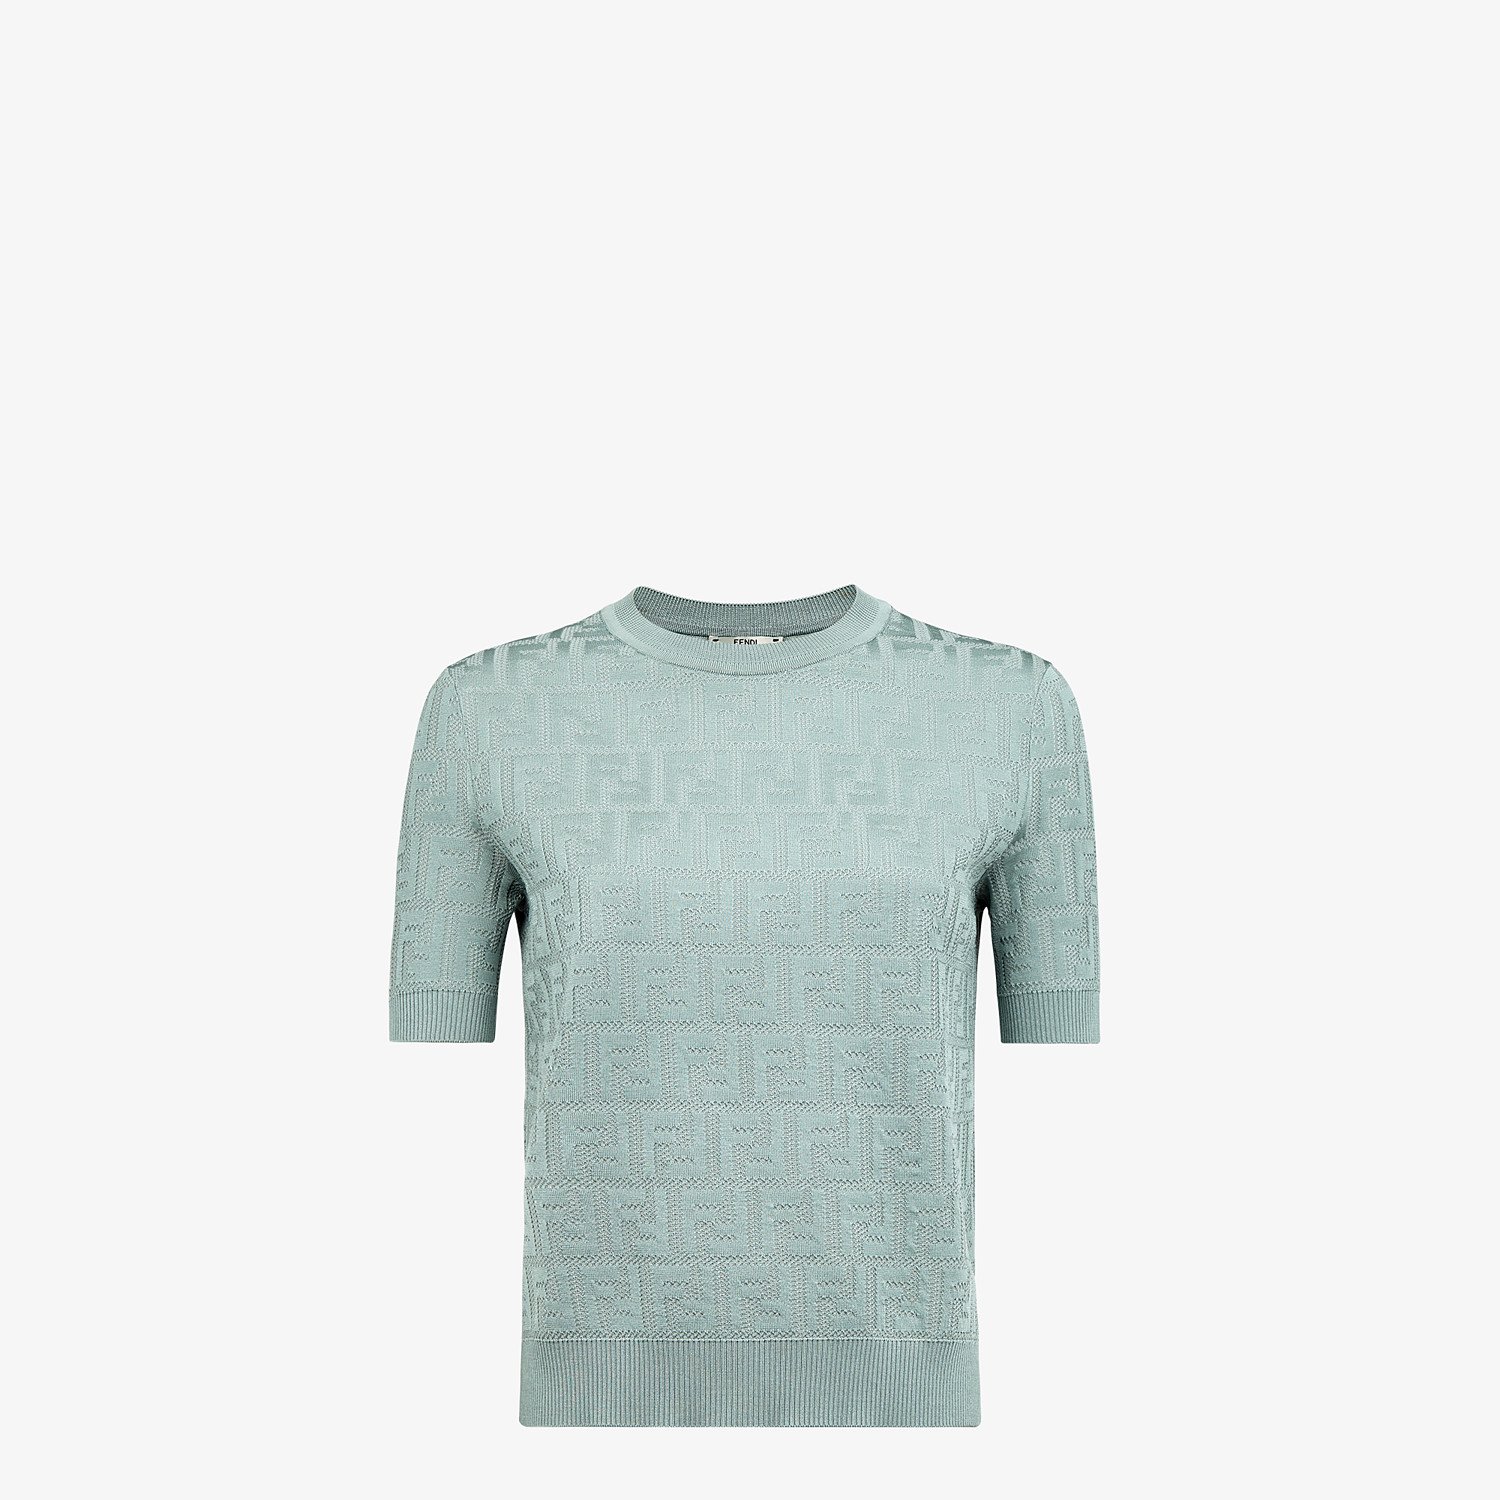 FENDI SWEATER - Light blue cotton and viscose sweater - view 1 detail